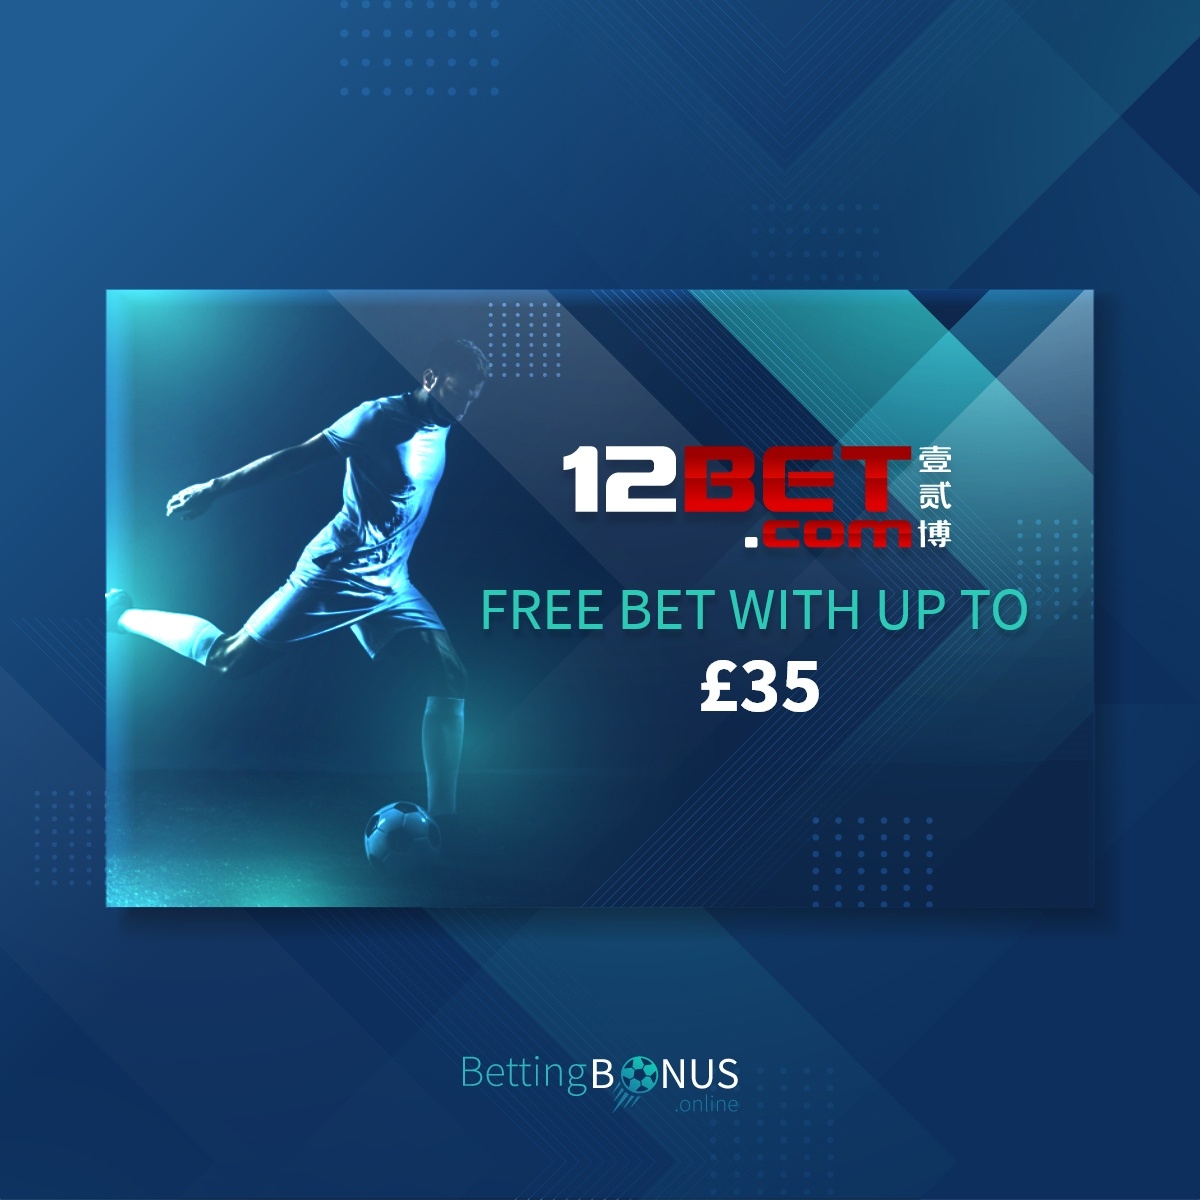 <span>12bet App</span> - Top 12bet Apps & Other Available Mobile Offers